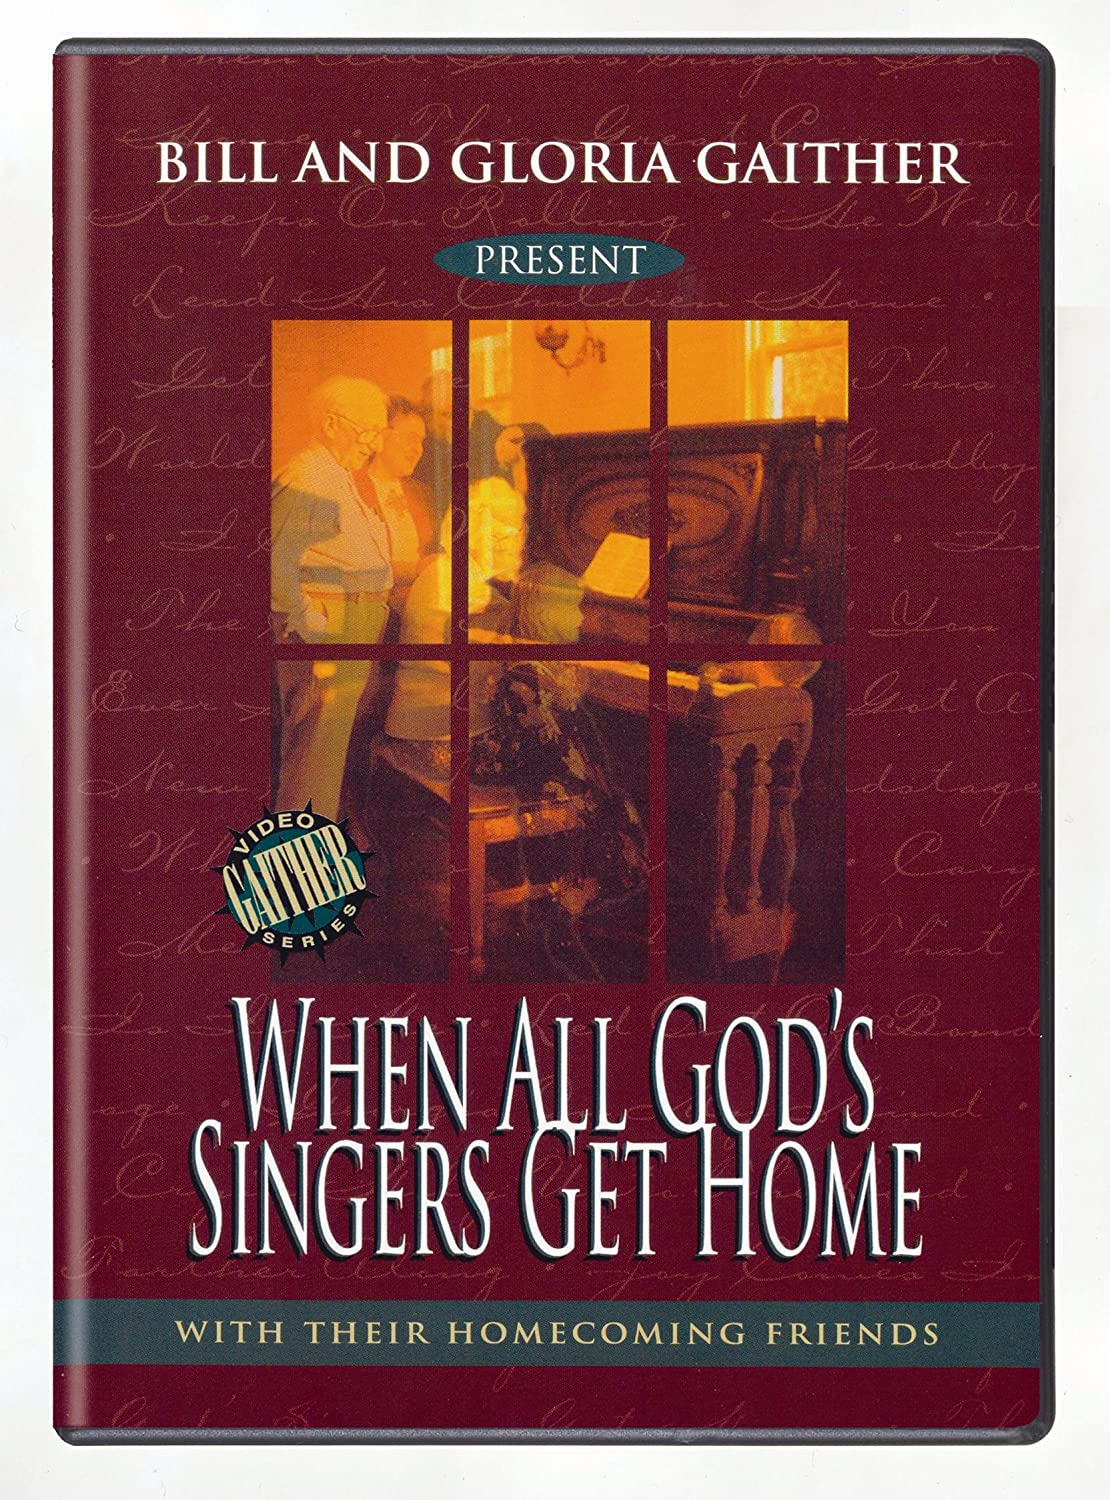 When All God's Singers Get Home